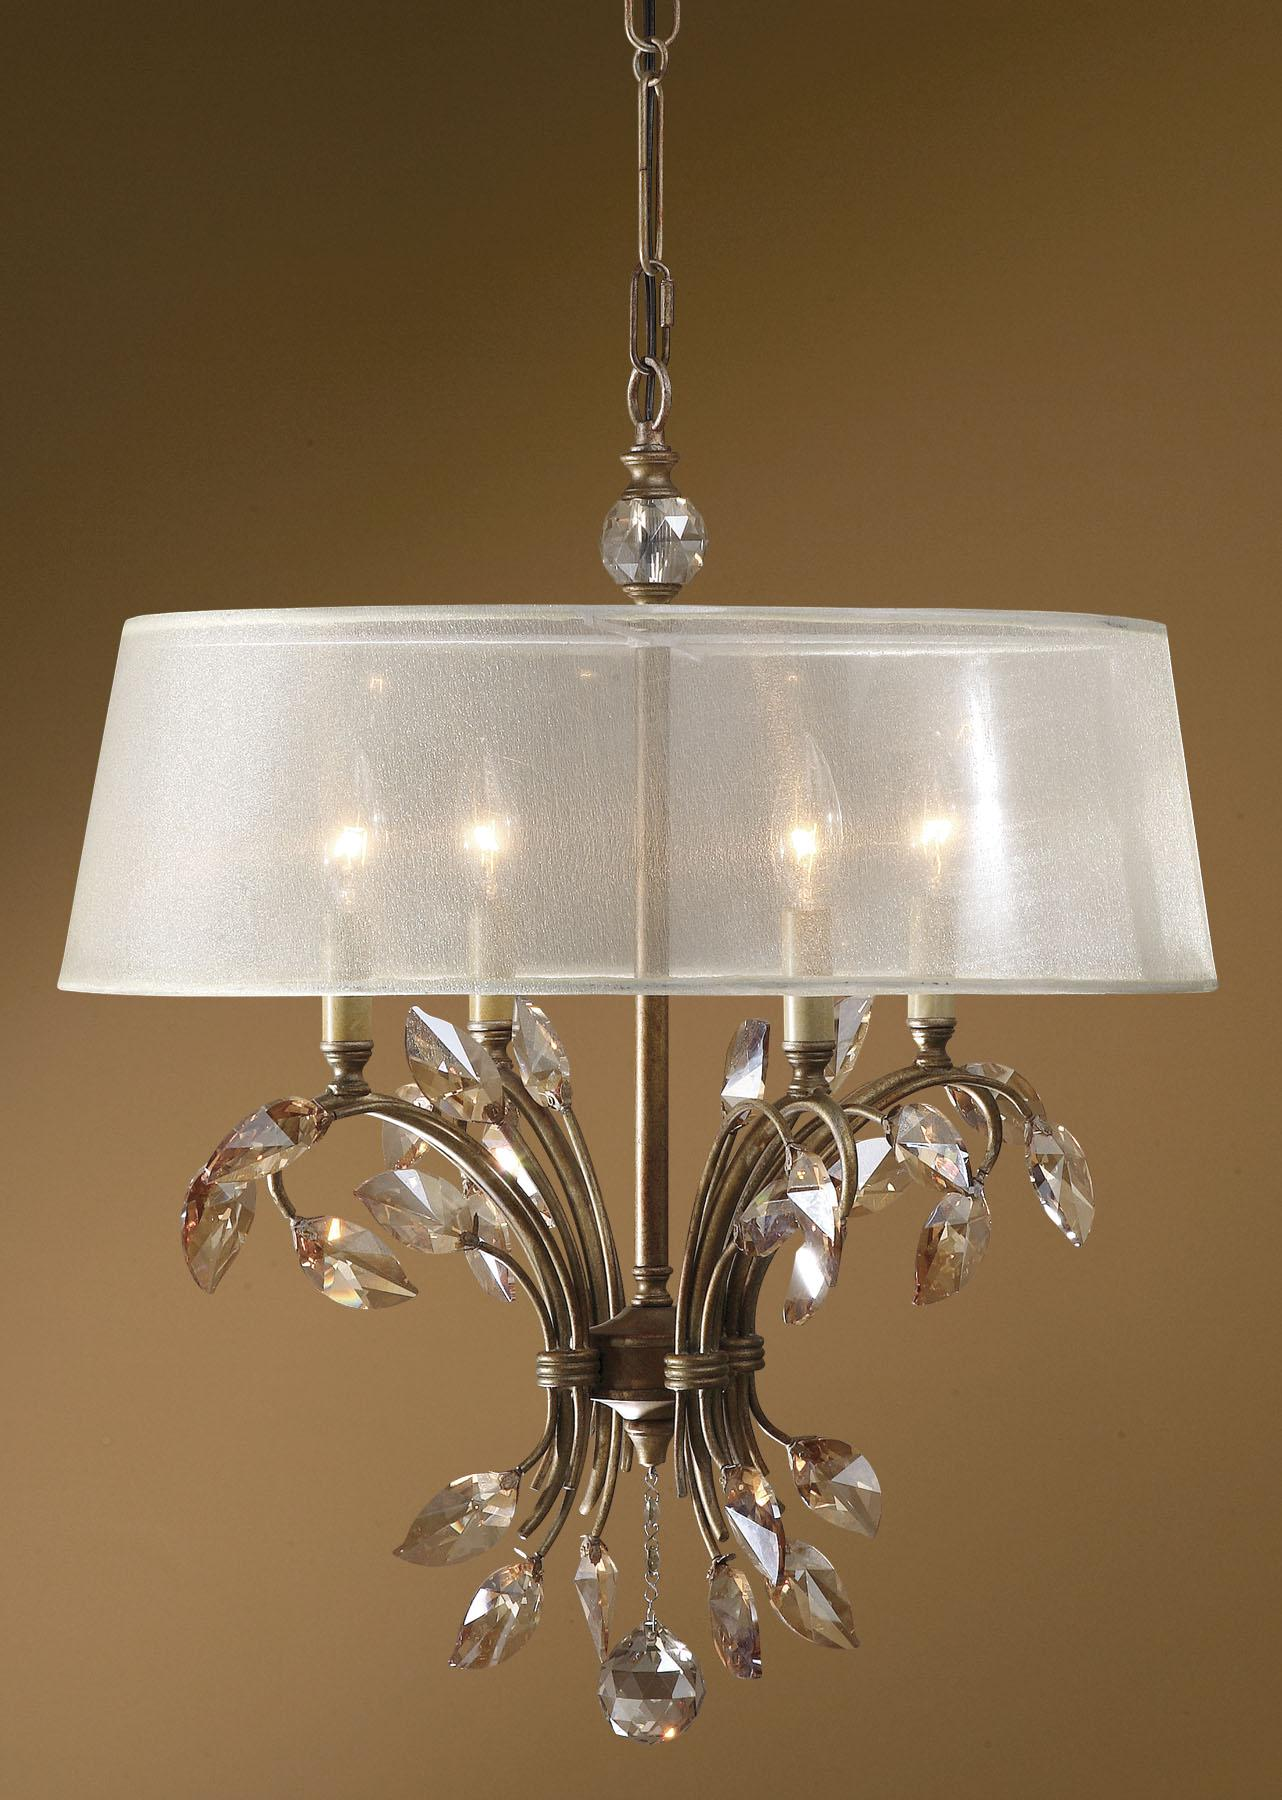 Uttermost Lighting Fixtures Alenya 4 Light Chandelier - Item Number: 21245